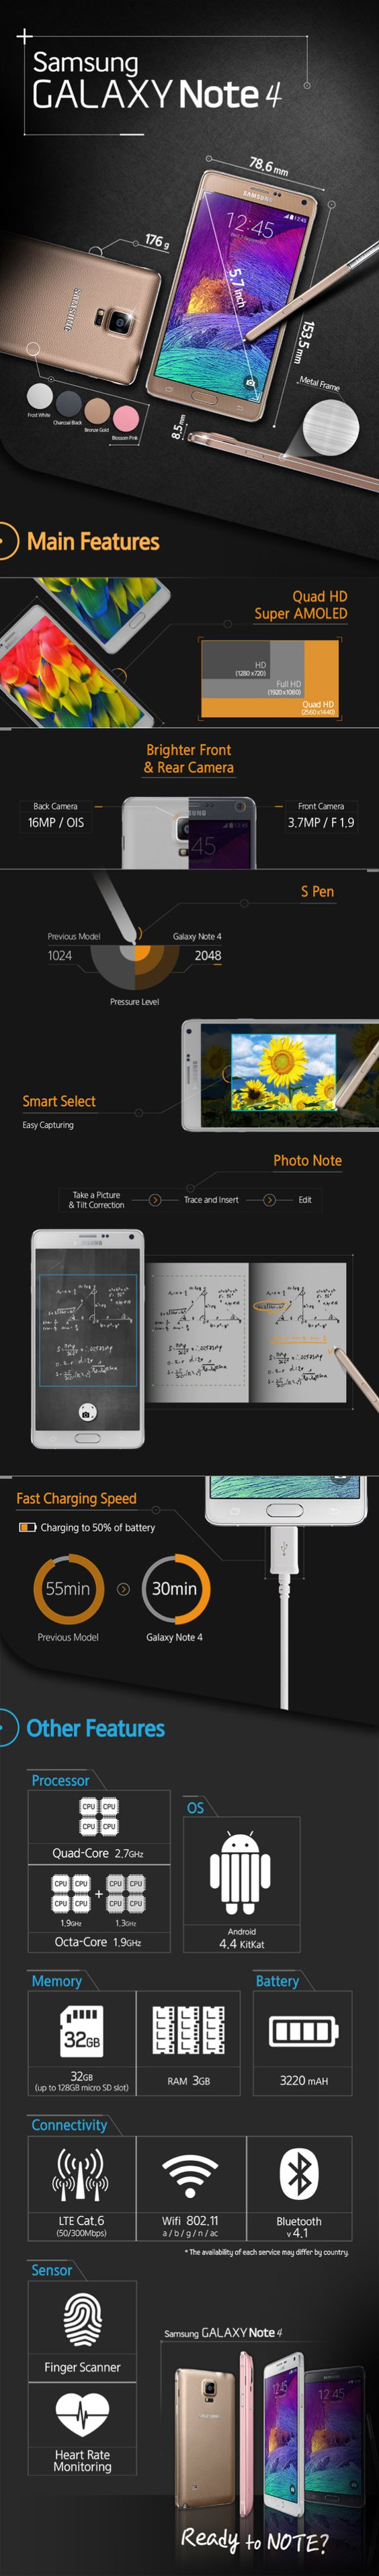 Samsung Galaxy Note 4 #Infographic - A Workhorse #SmartPhone